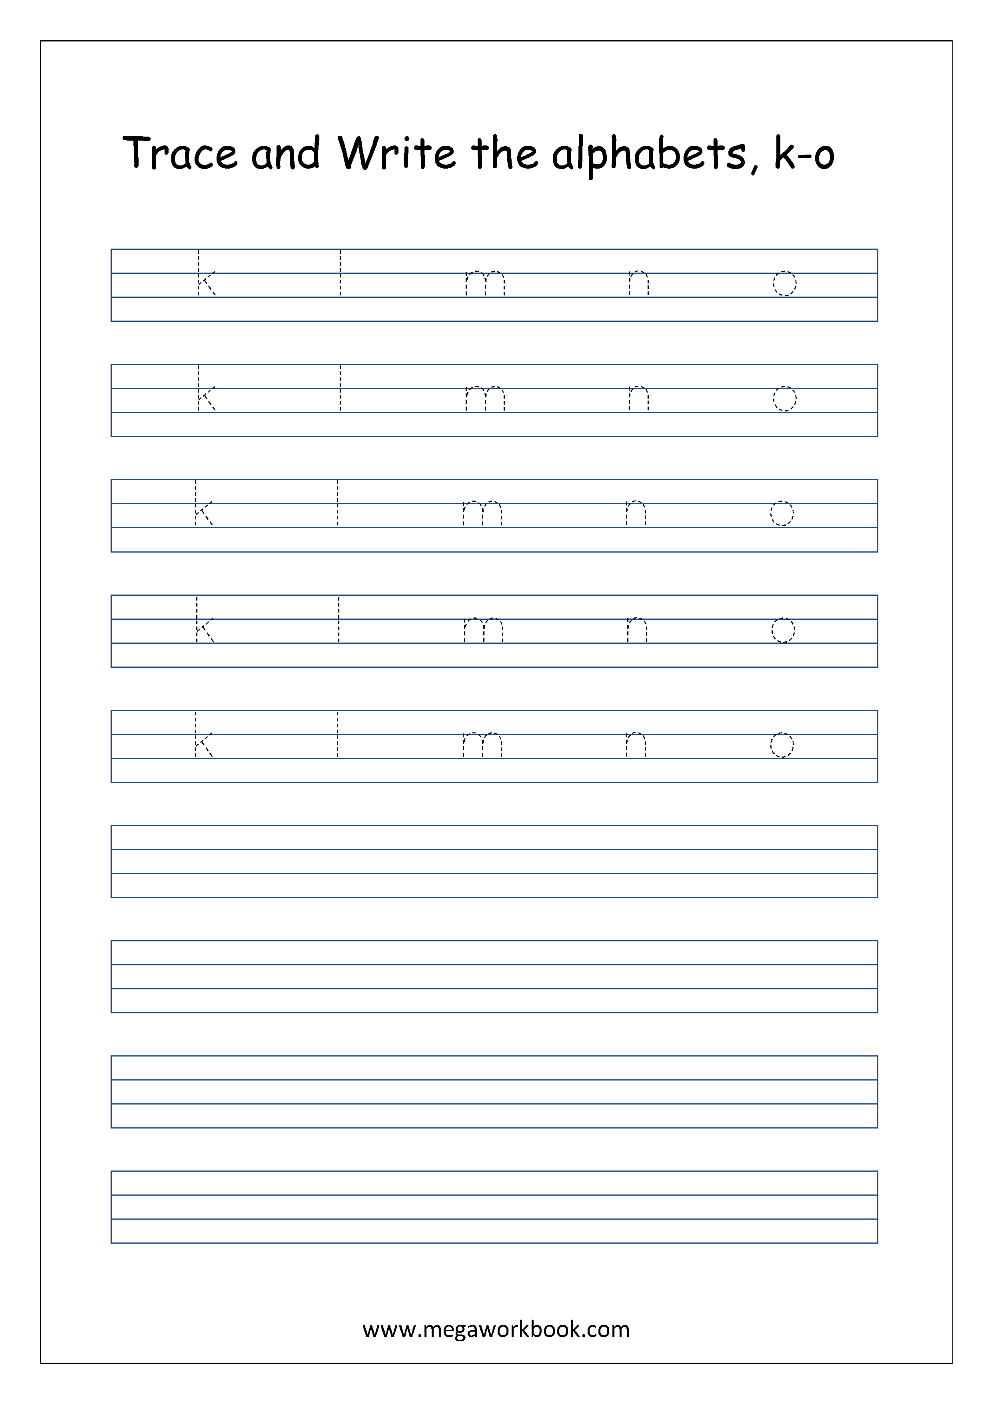 Worksheet Writing The Letter S free english worksheets alphabet writing small letters worksheet k o